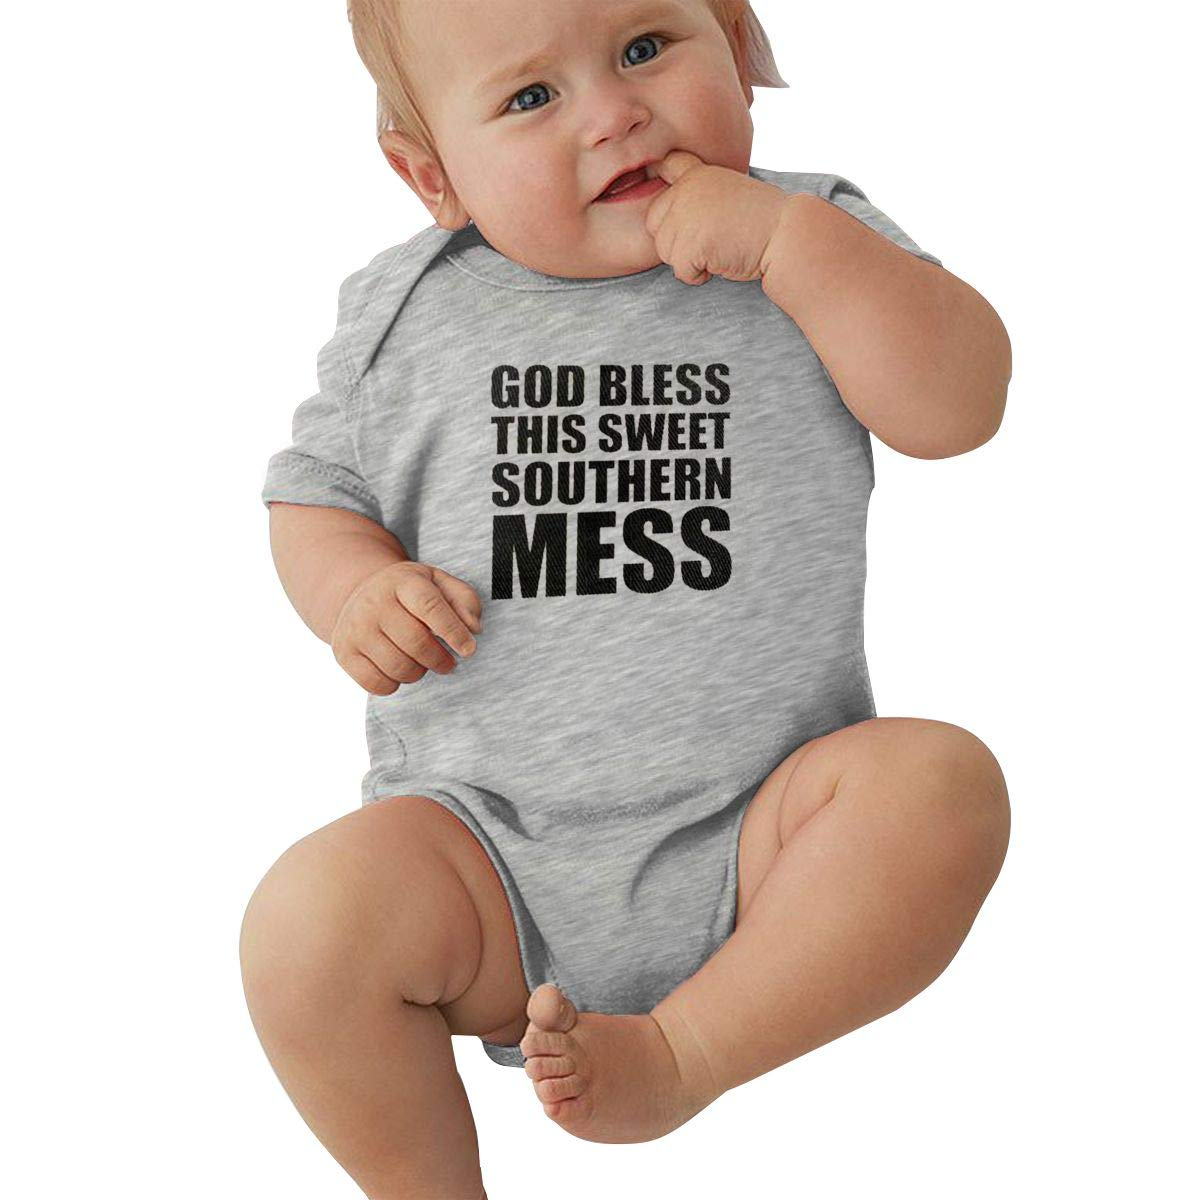 Bodysuits Clothes Onesies Jumpsuits Outfits Gray HappyLifea God Bless This Sweet Southern Mess Baby Pajamas